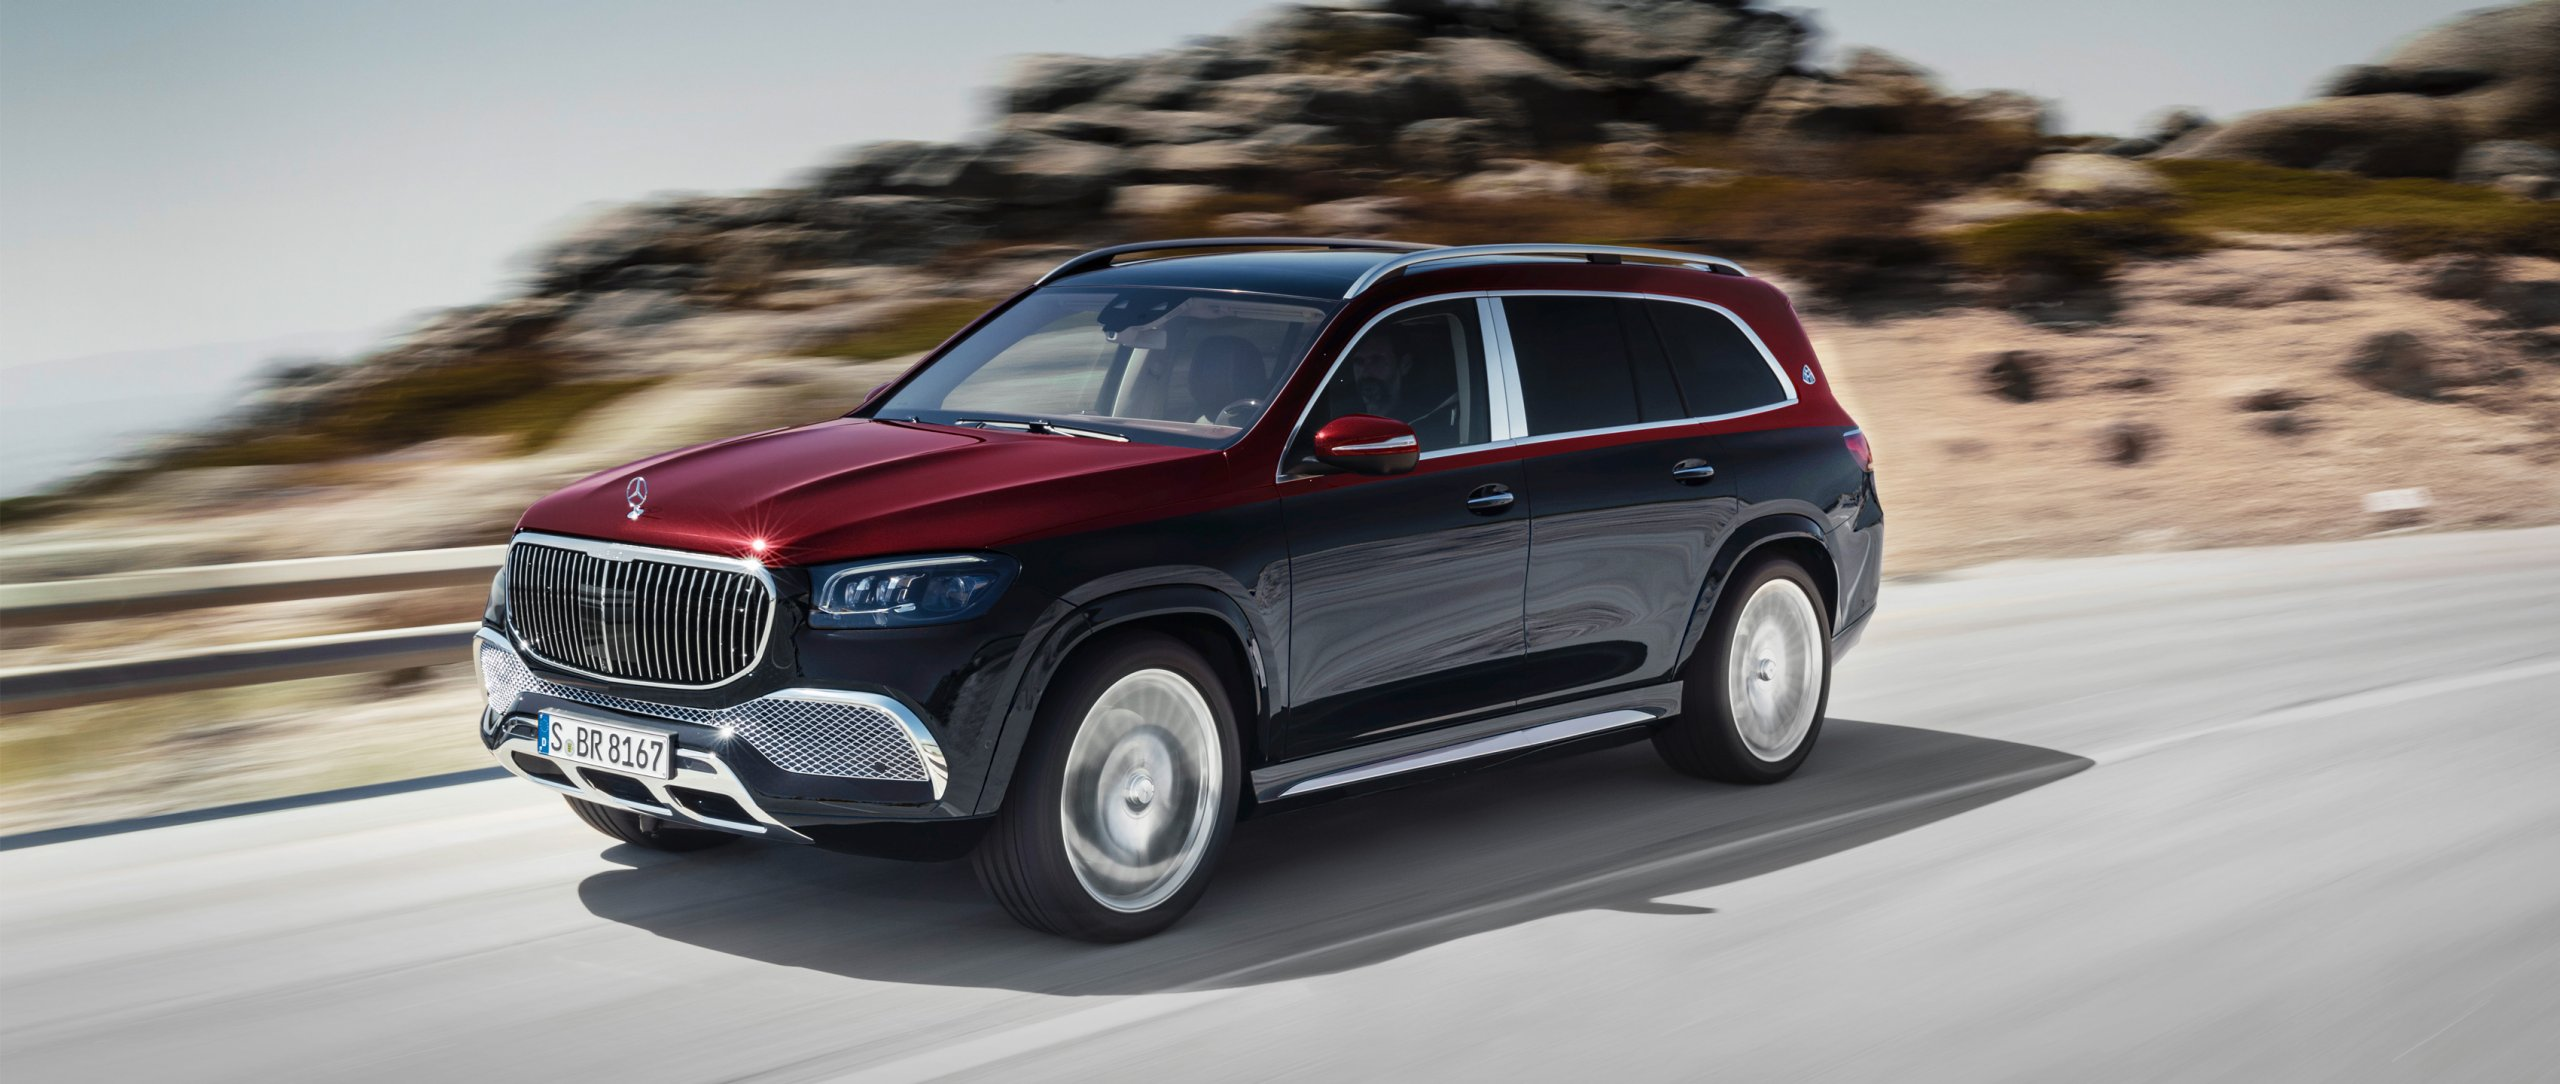 01-mercedes-benz-2020-mercedes-maybach-gls-600-4matic-x167-two-colour-paint-rubellite-red-obsidian-black-3400x1440